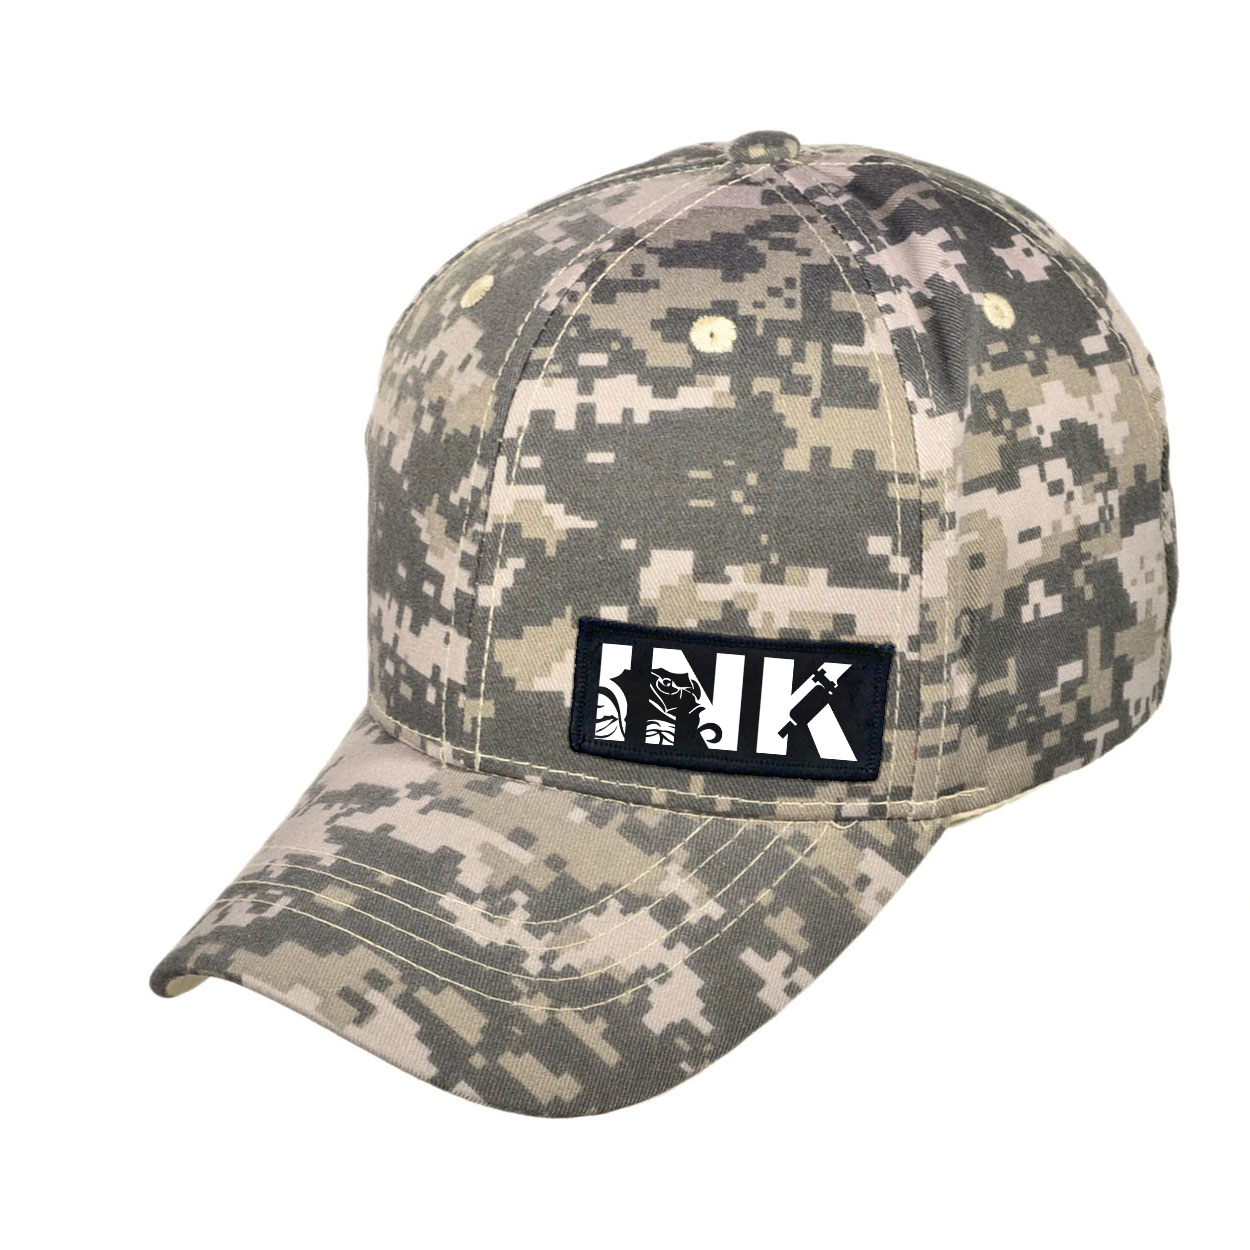 Ink Tattoo Logo Night Out Woven Patch Hat Digital Camo (White Logo)